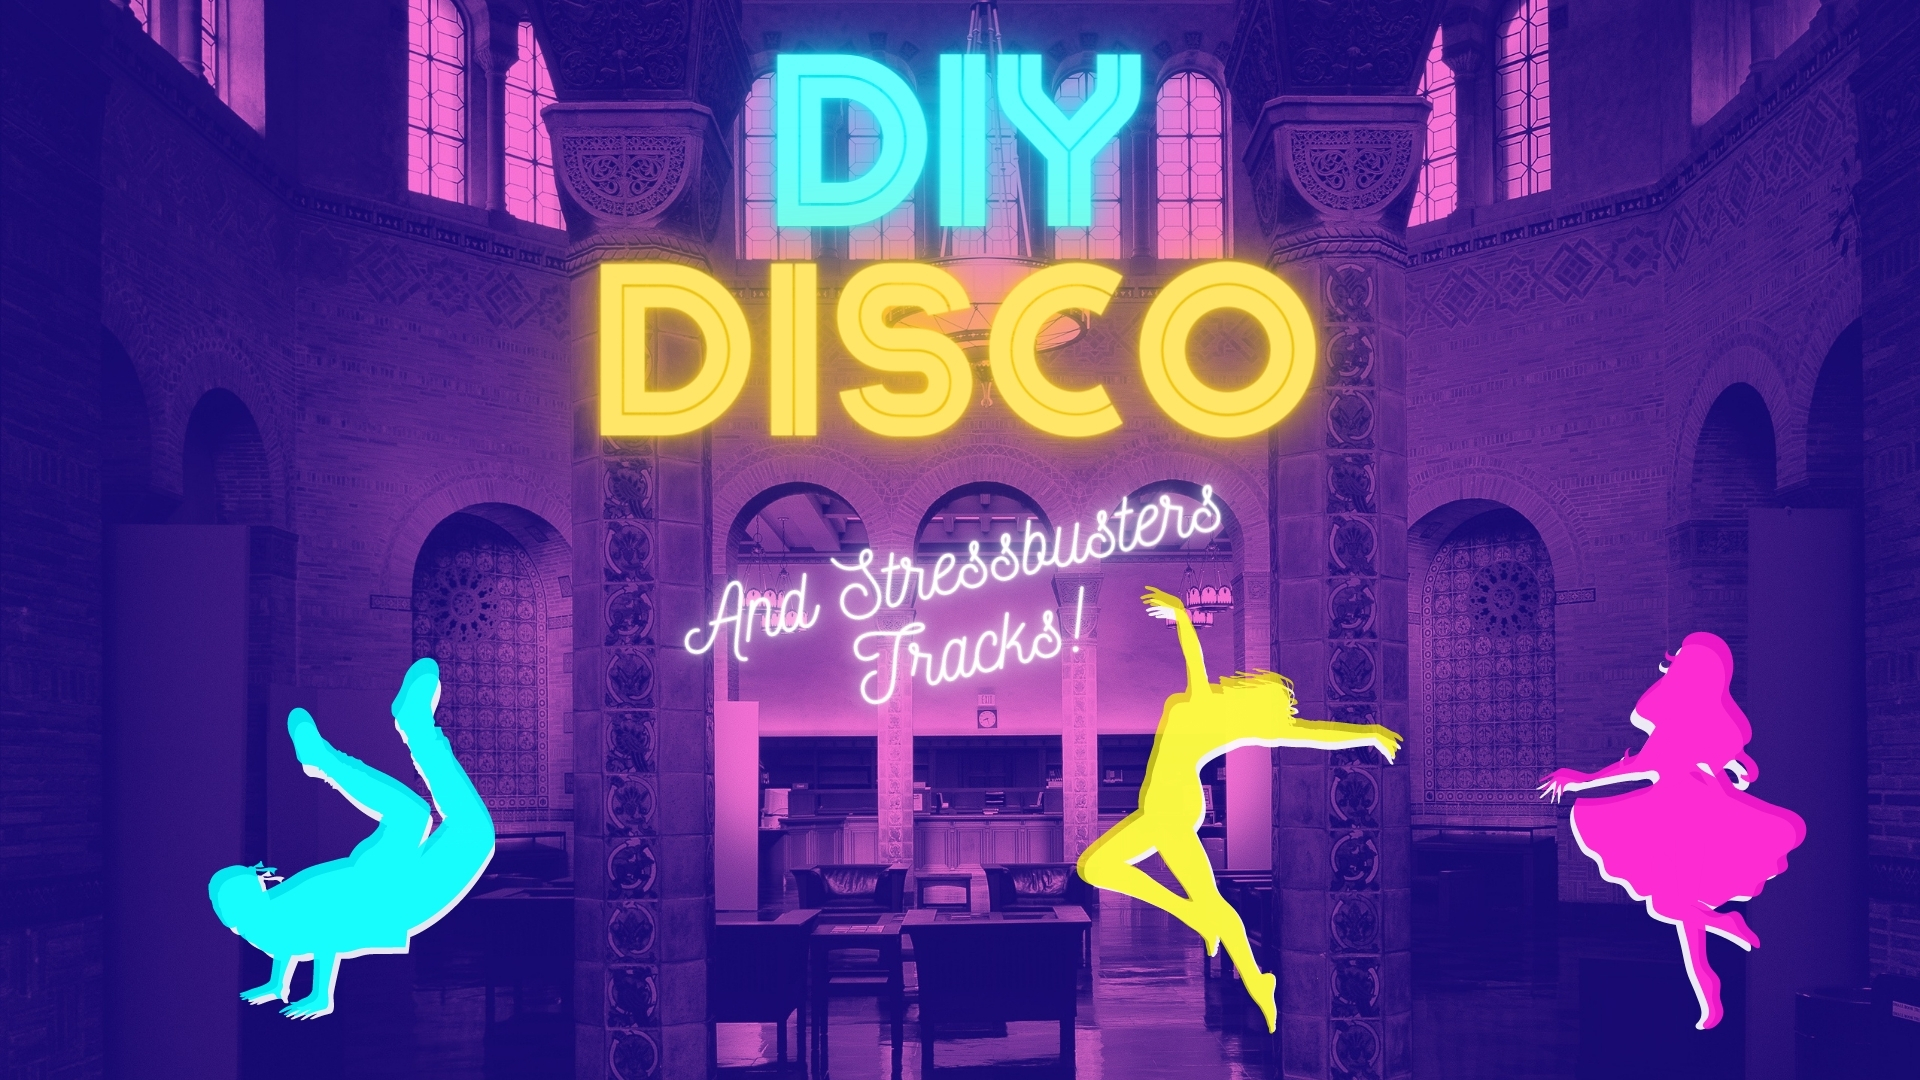 "Text: ""DIY Disco and Stressbusters Tracks"" in neon letters Image: Powell Library with a neon, purple hue with three dancing silhouettes"